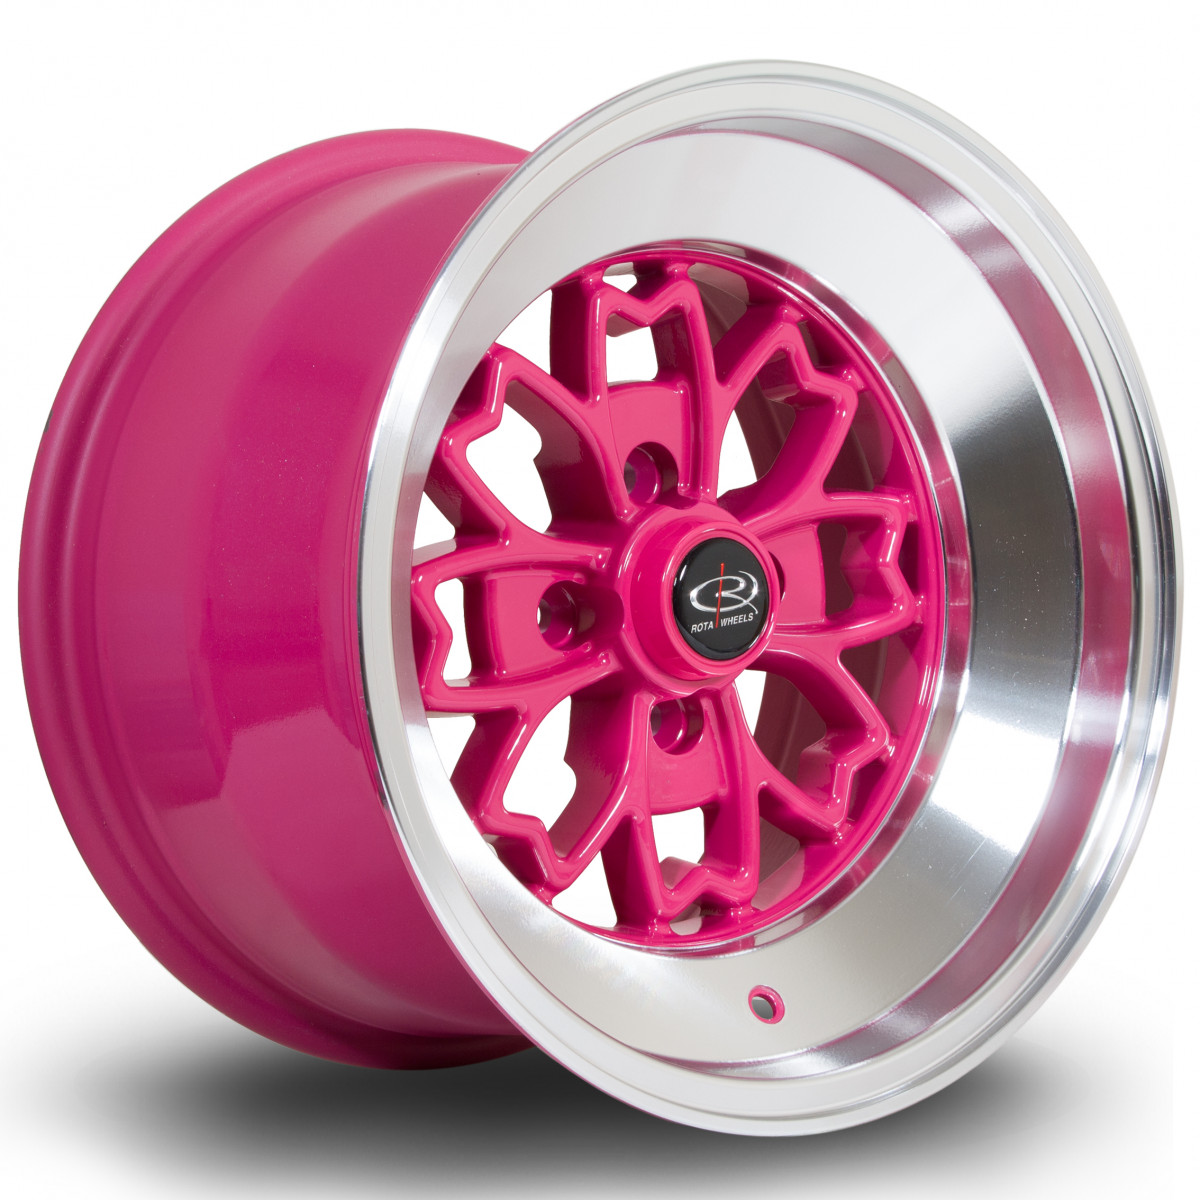 Aleica 15x9 4x100 ET10 Pink with Polished Lip